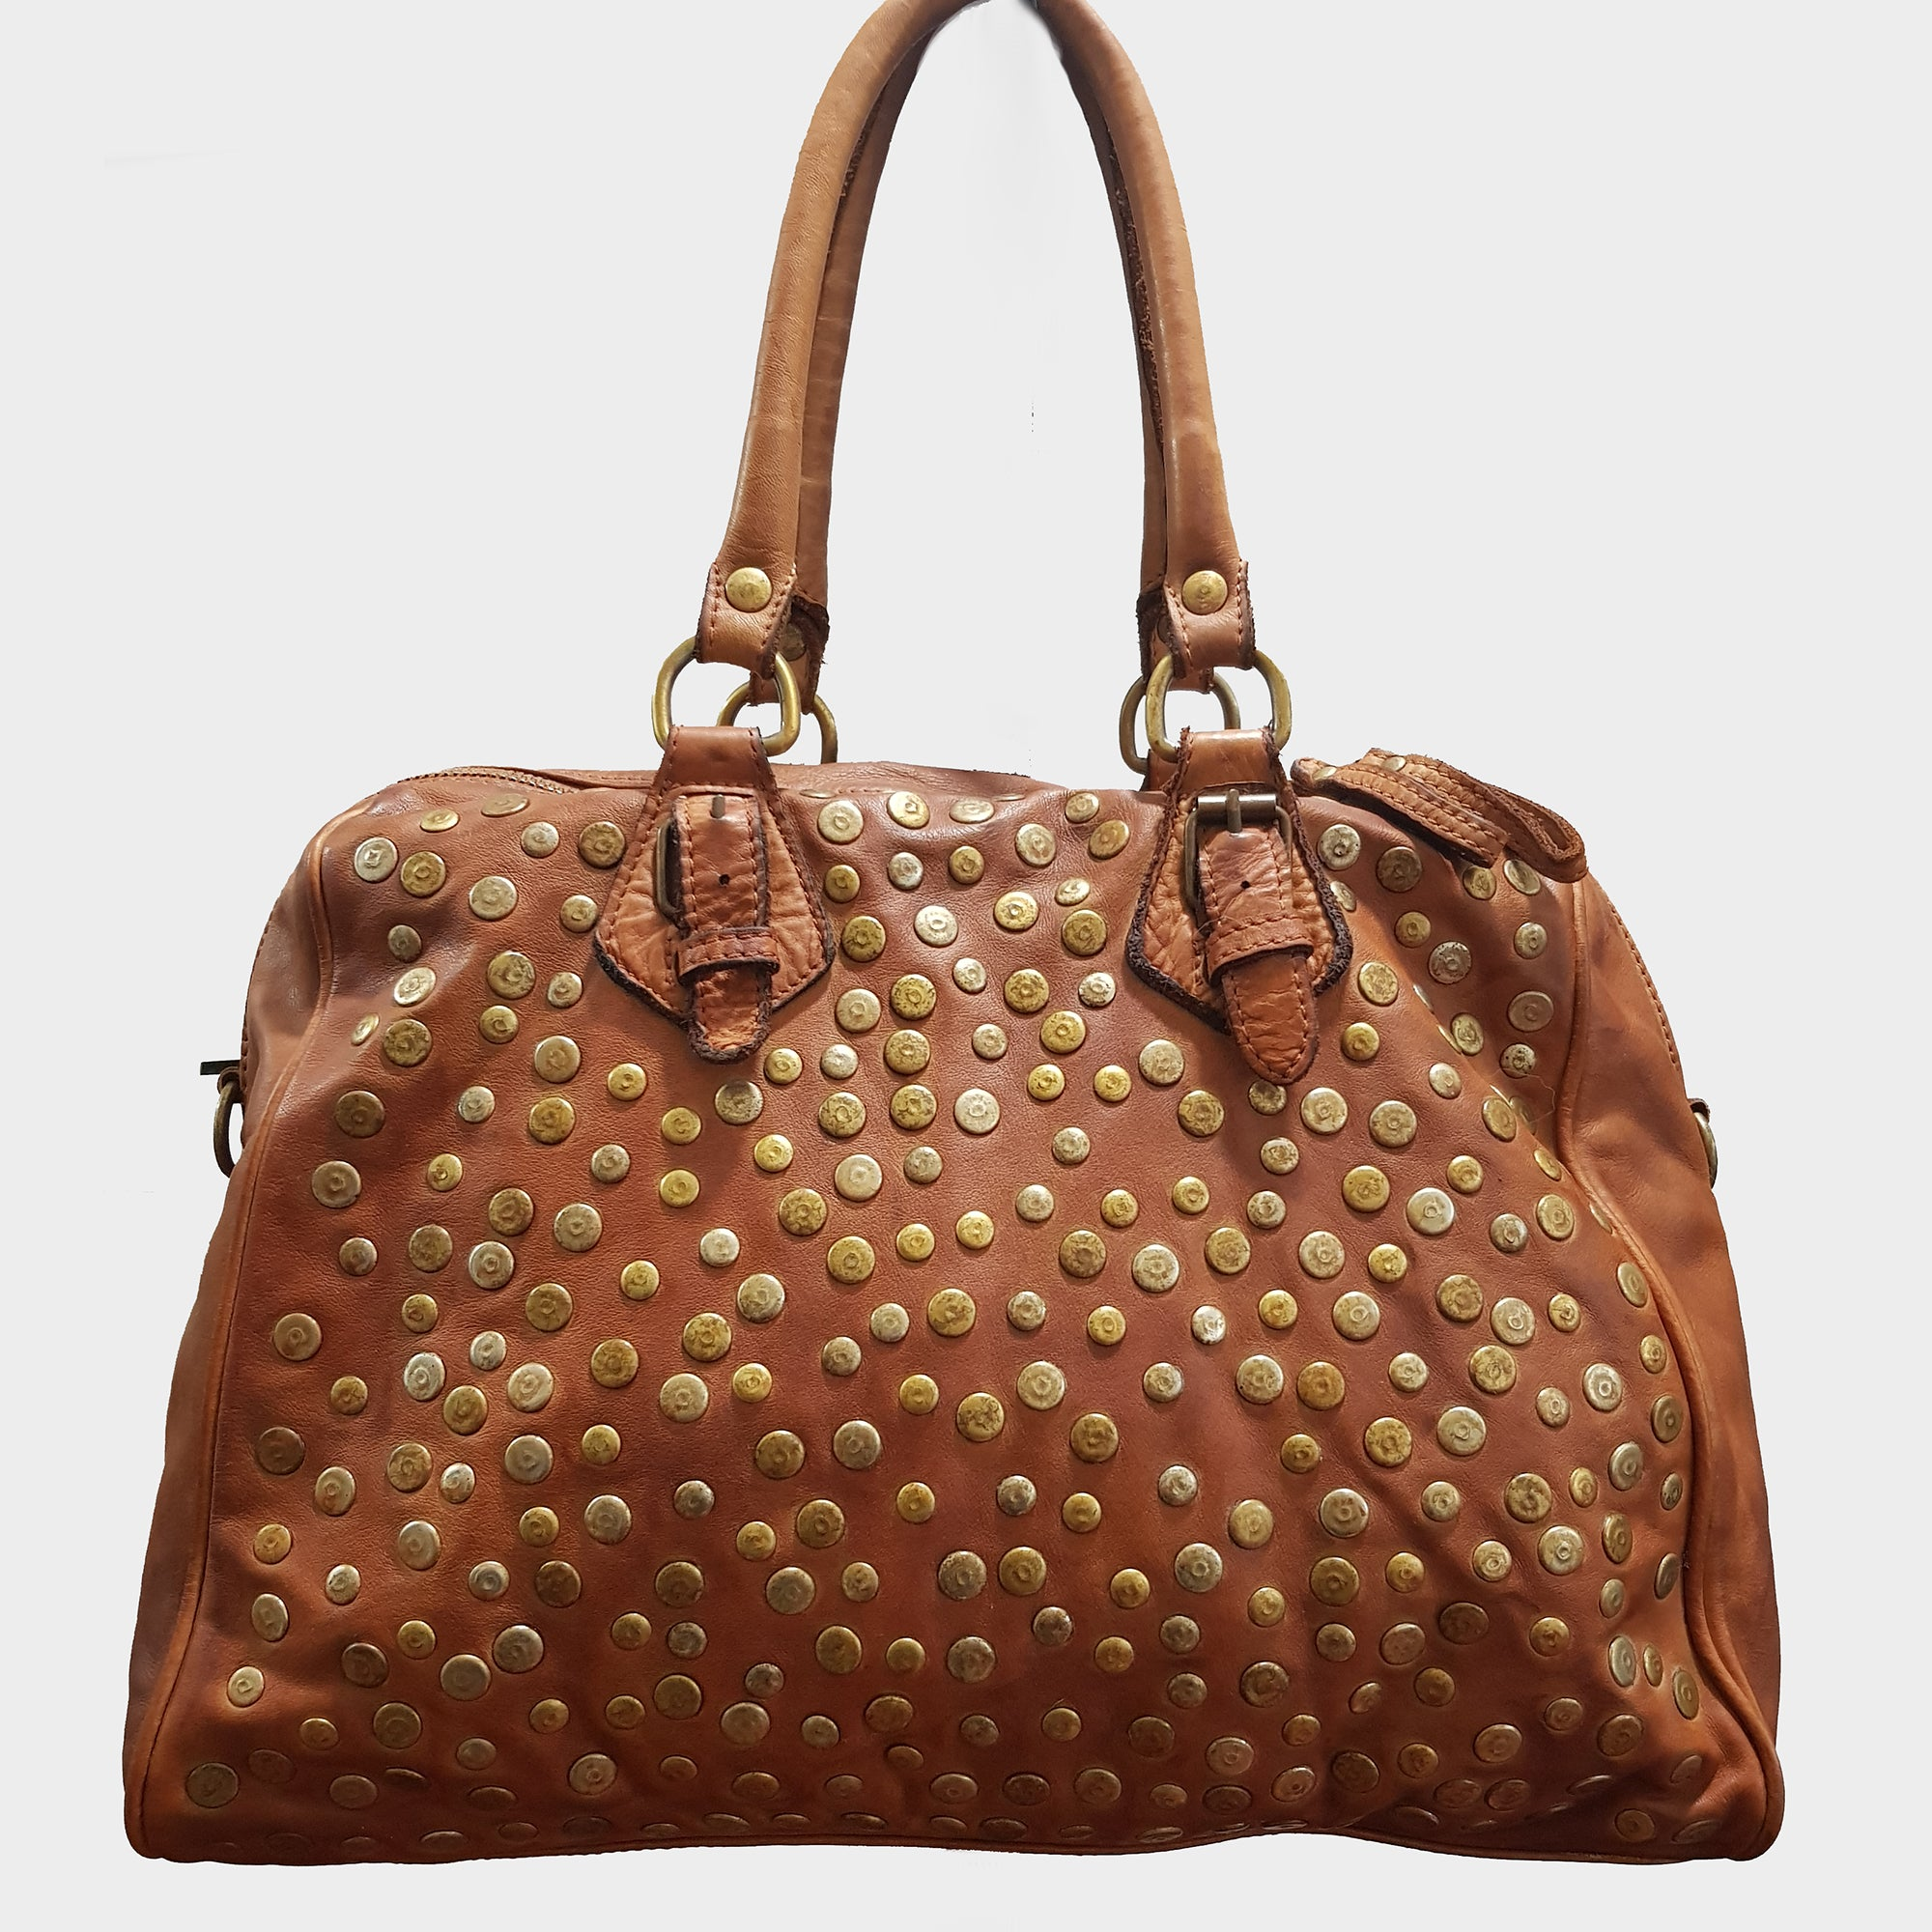 Studded Washed Leather Handbag / Shoulder Bag